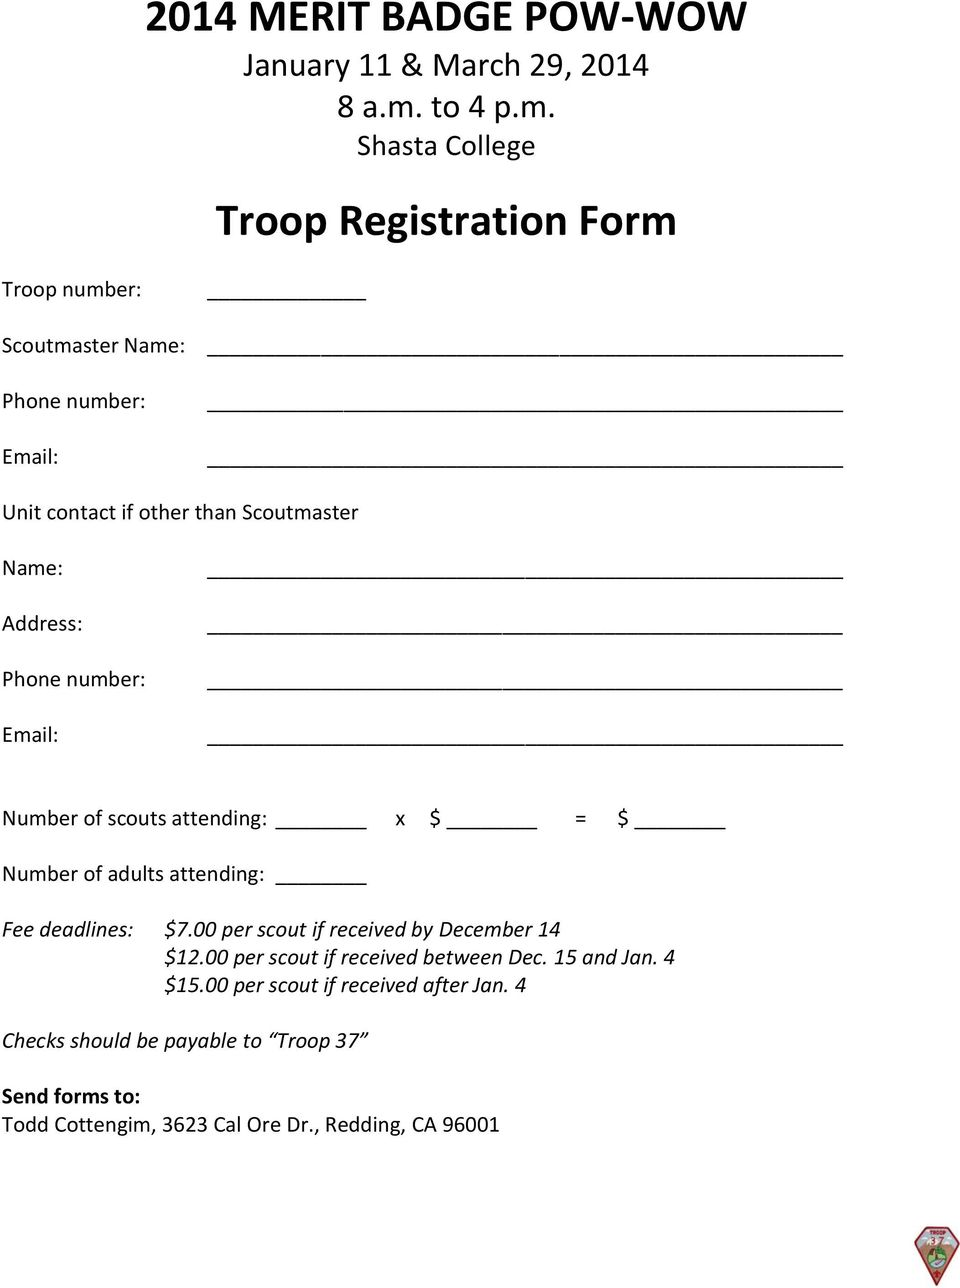 Shasta College Troop Registration Form Troop number: Scoutmaster Name: Phone number: Email: Unit contact if other than